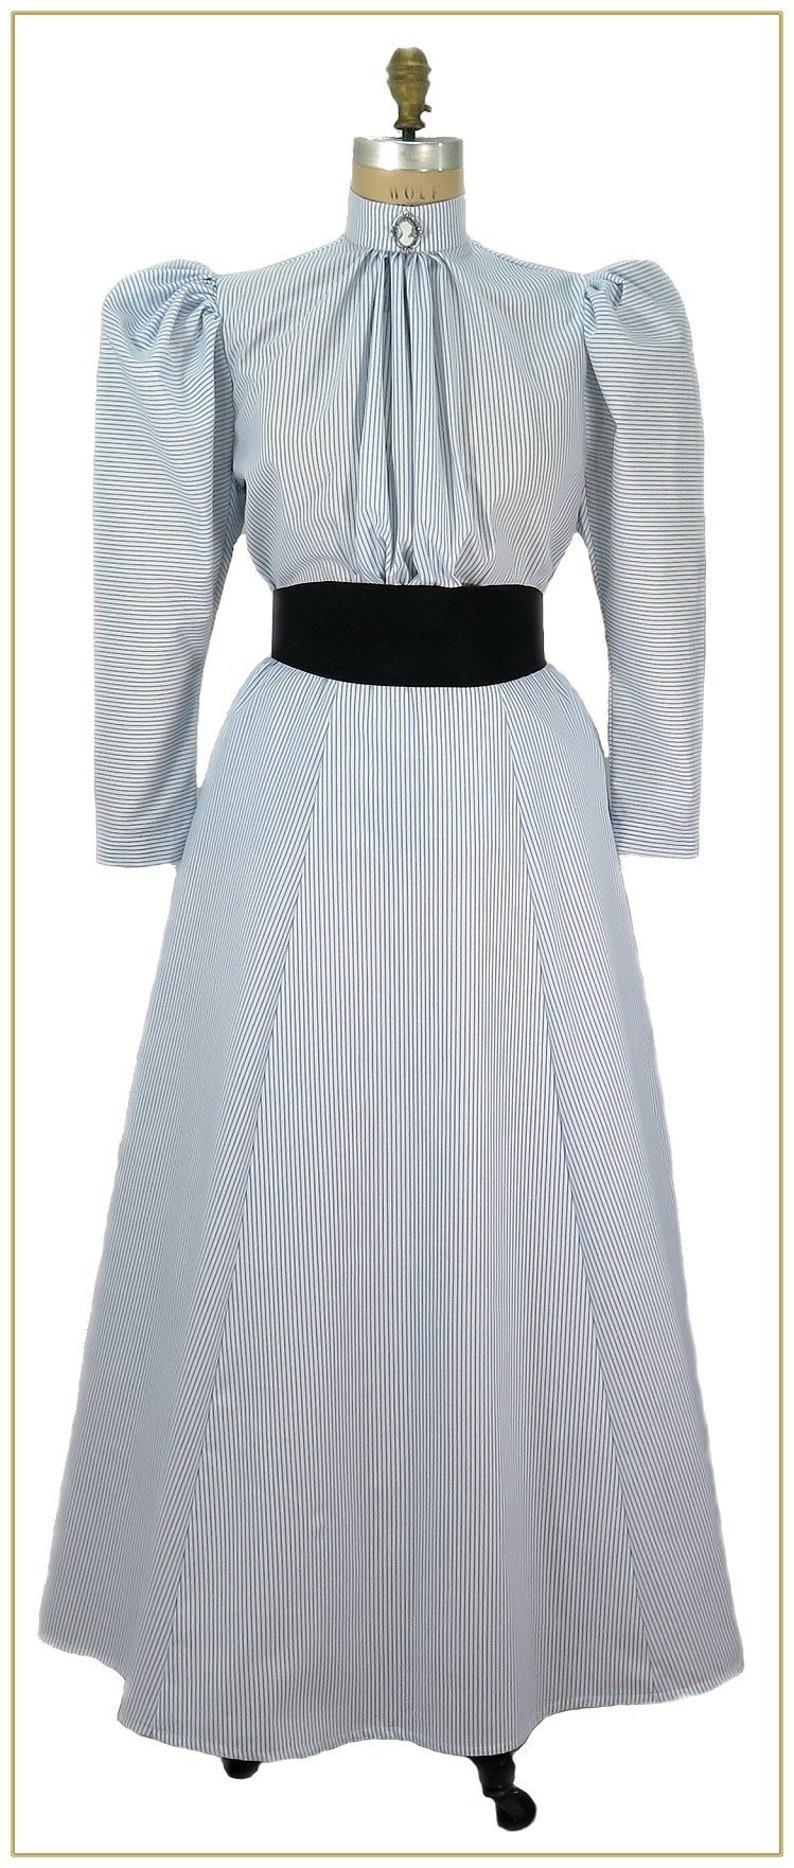 1900 Edwardian Dresses, Tea Party Dresses, White Lace Dresses 1895-1905 Striped Maid Skirt  $59.00 AT vintagedancer.com